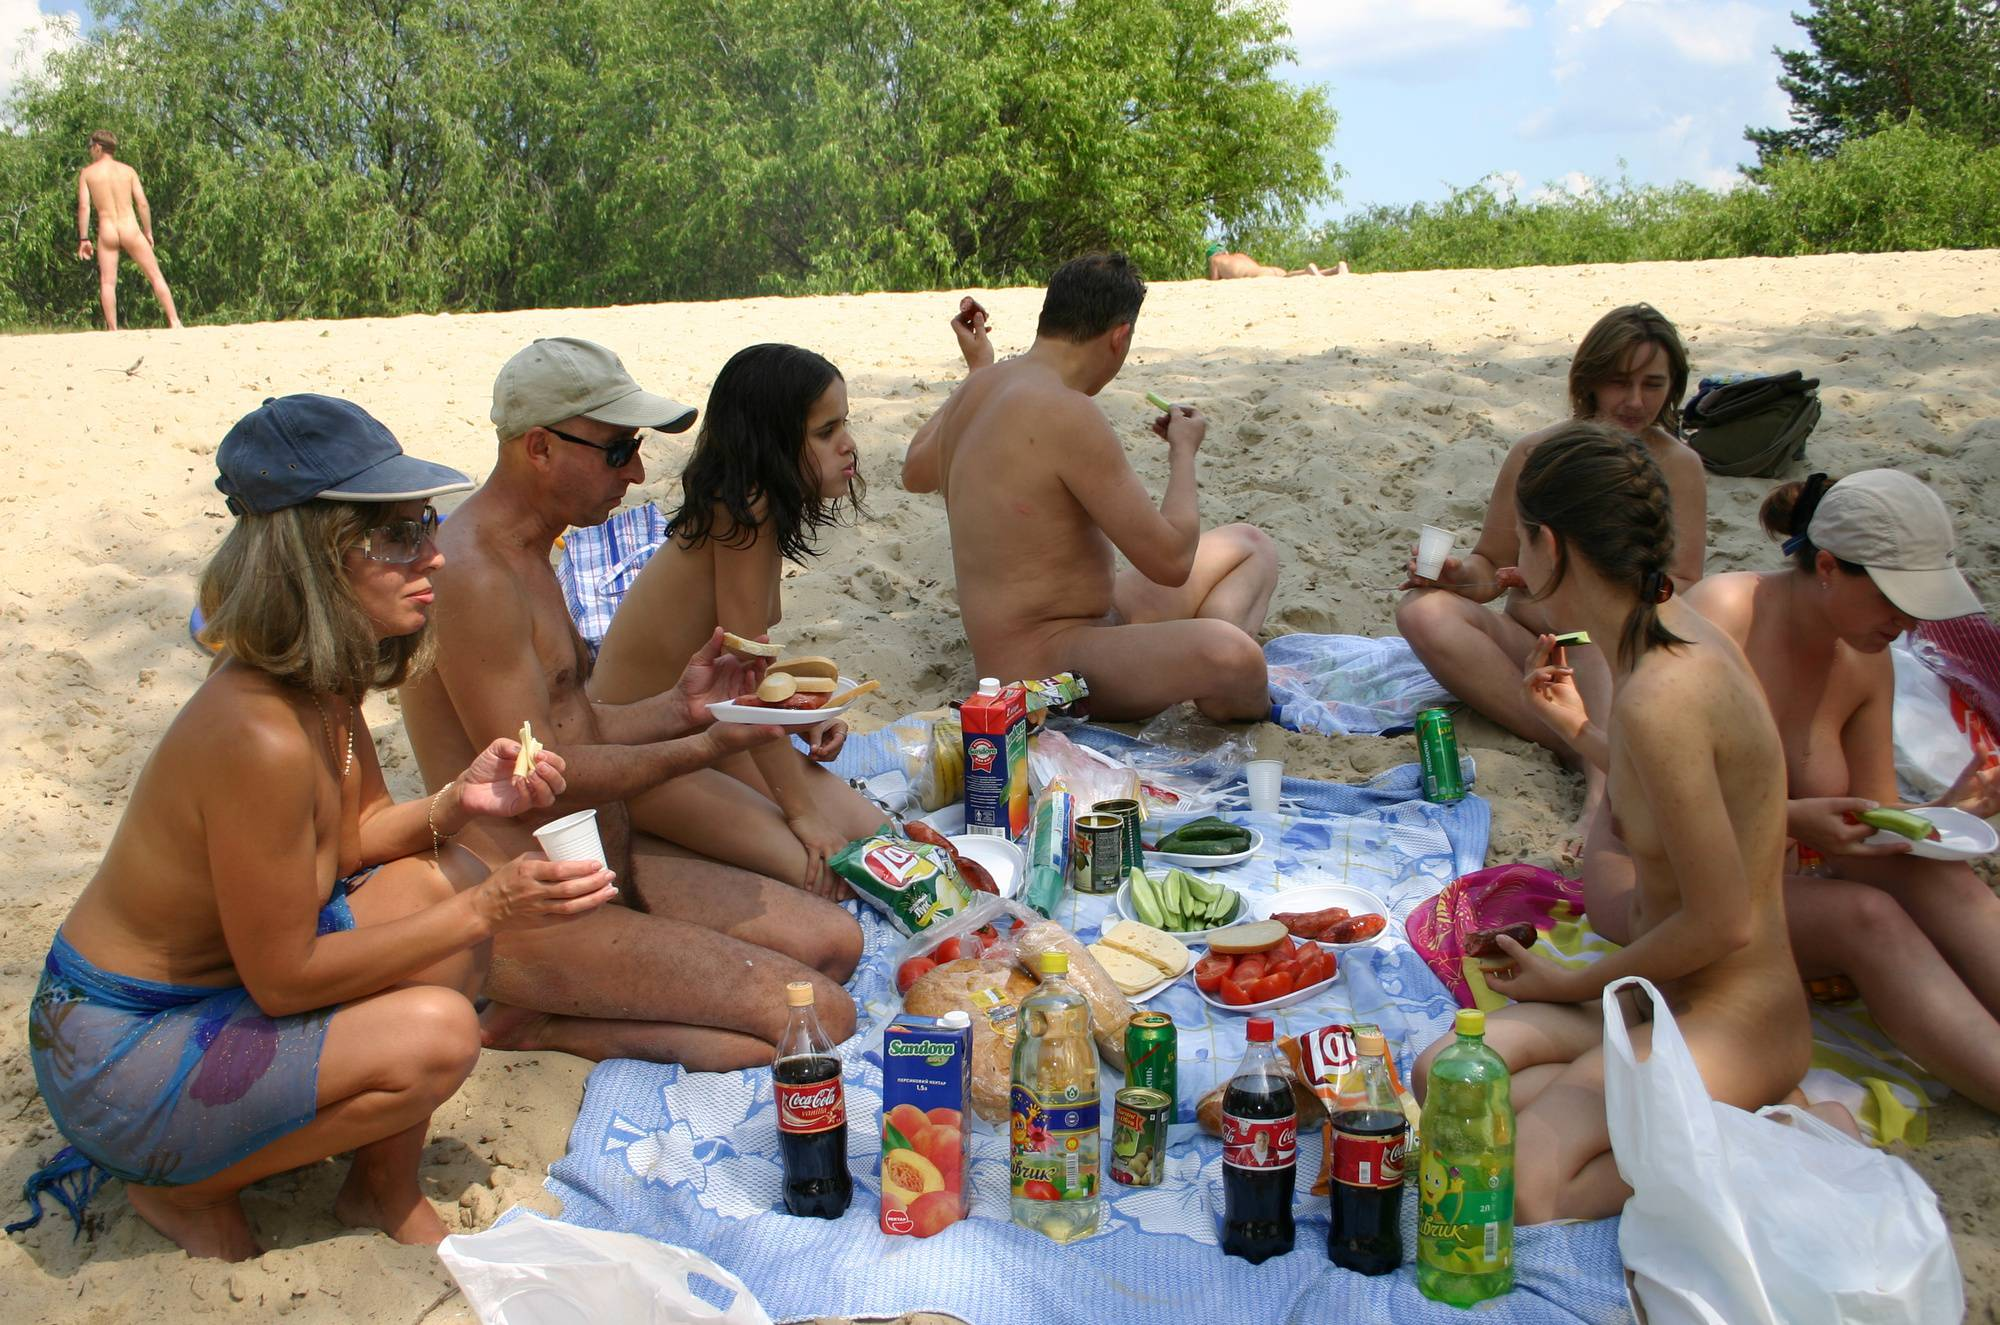 Pure Nudism Gallery Kiev Camping Fire Dining - 2